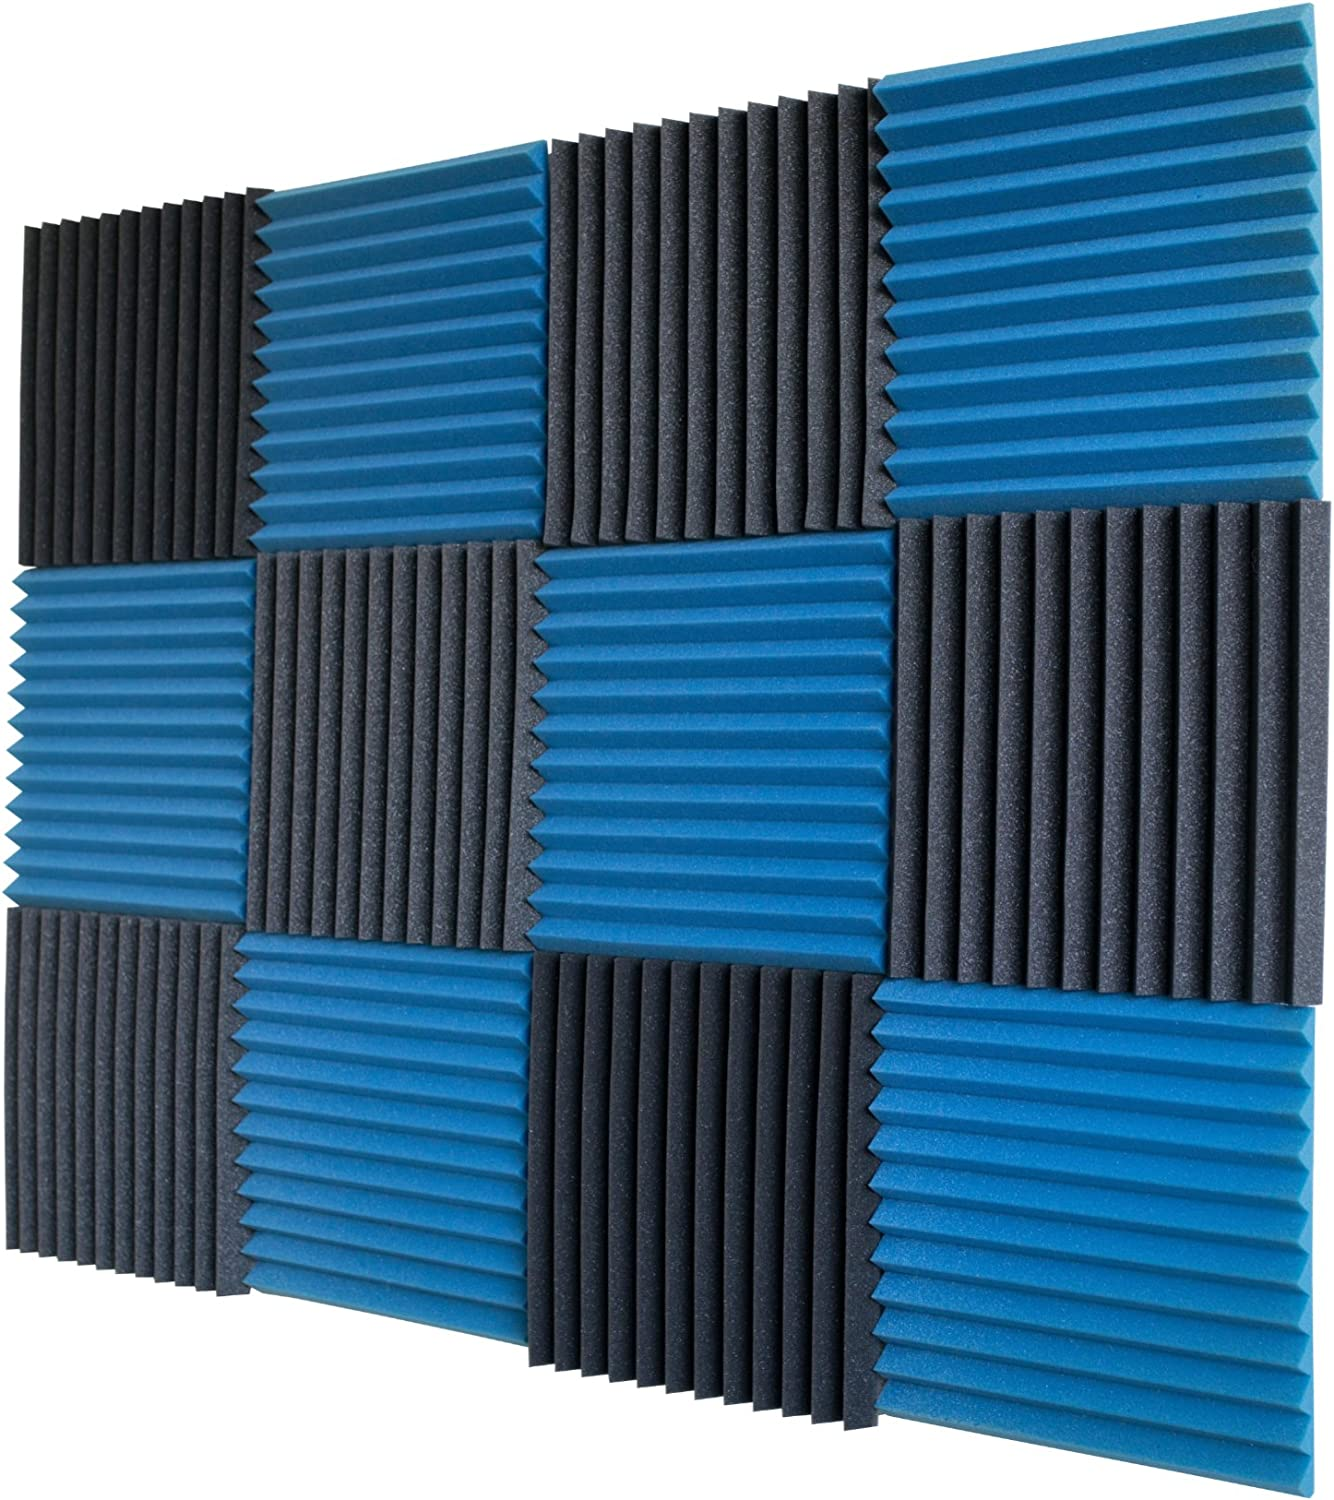 "12 Pack- Eis Blue/Charcoal Acoustic Panels Studio Foam Wedges 1"" X 12"" X 12"""